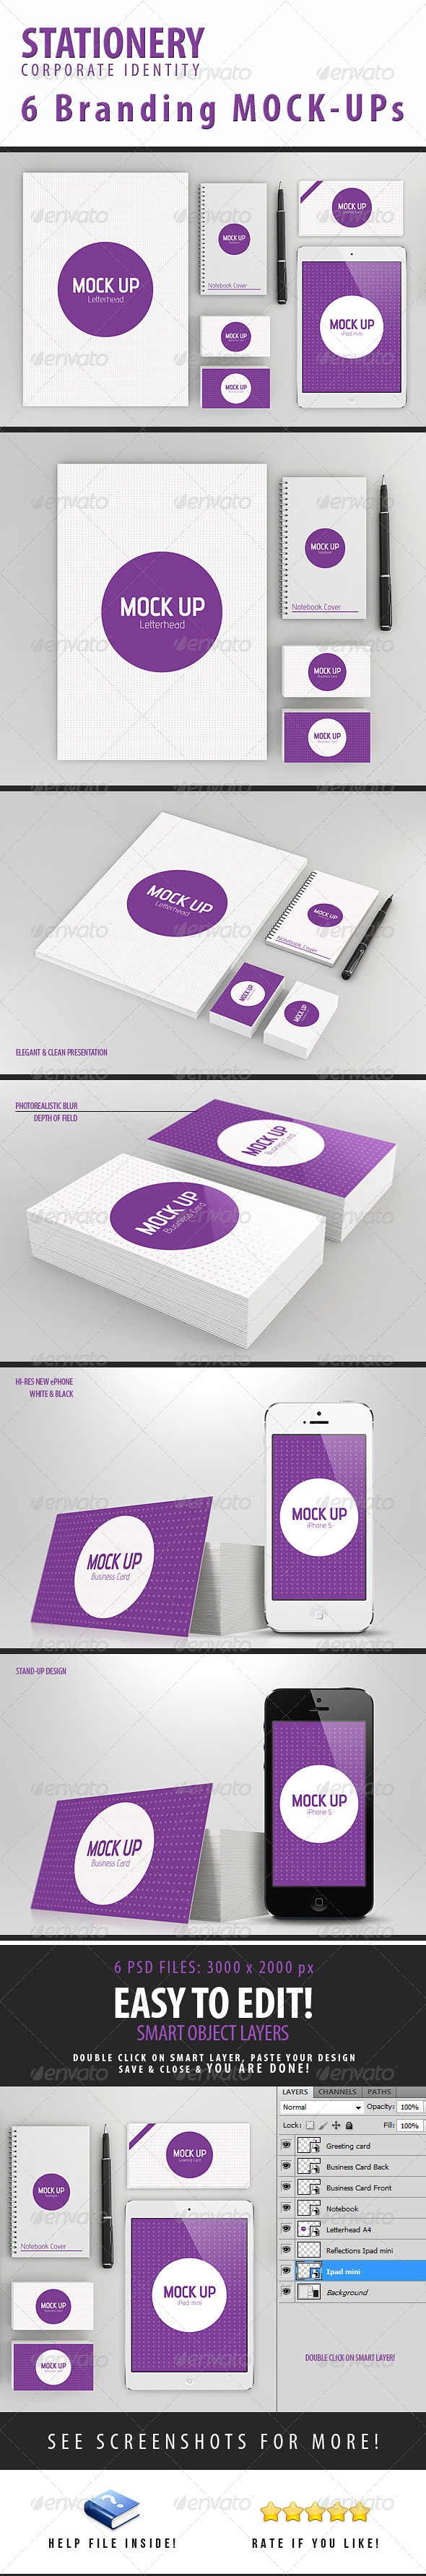 GraphicRiver Stationery Branding Mock-Up 4125953